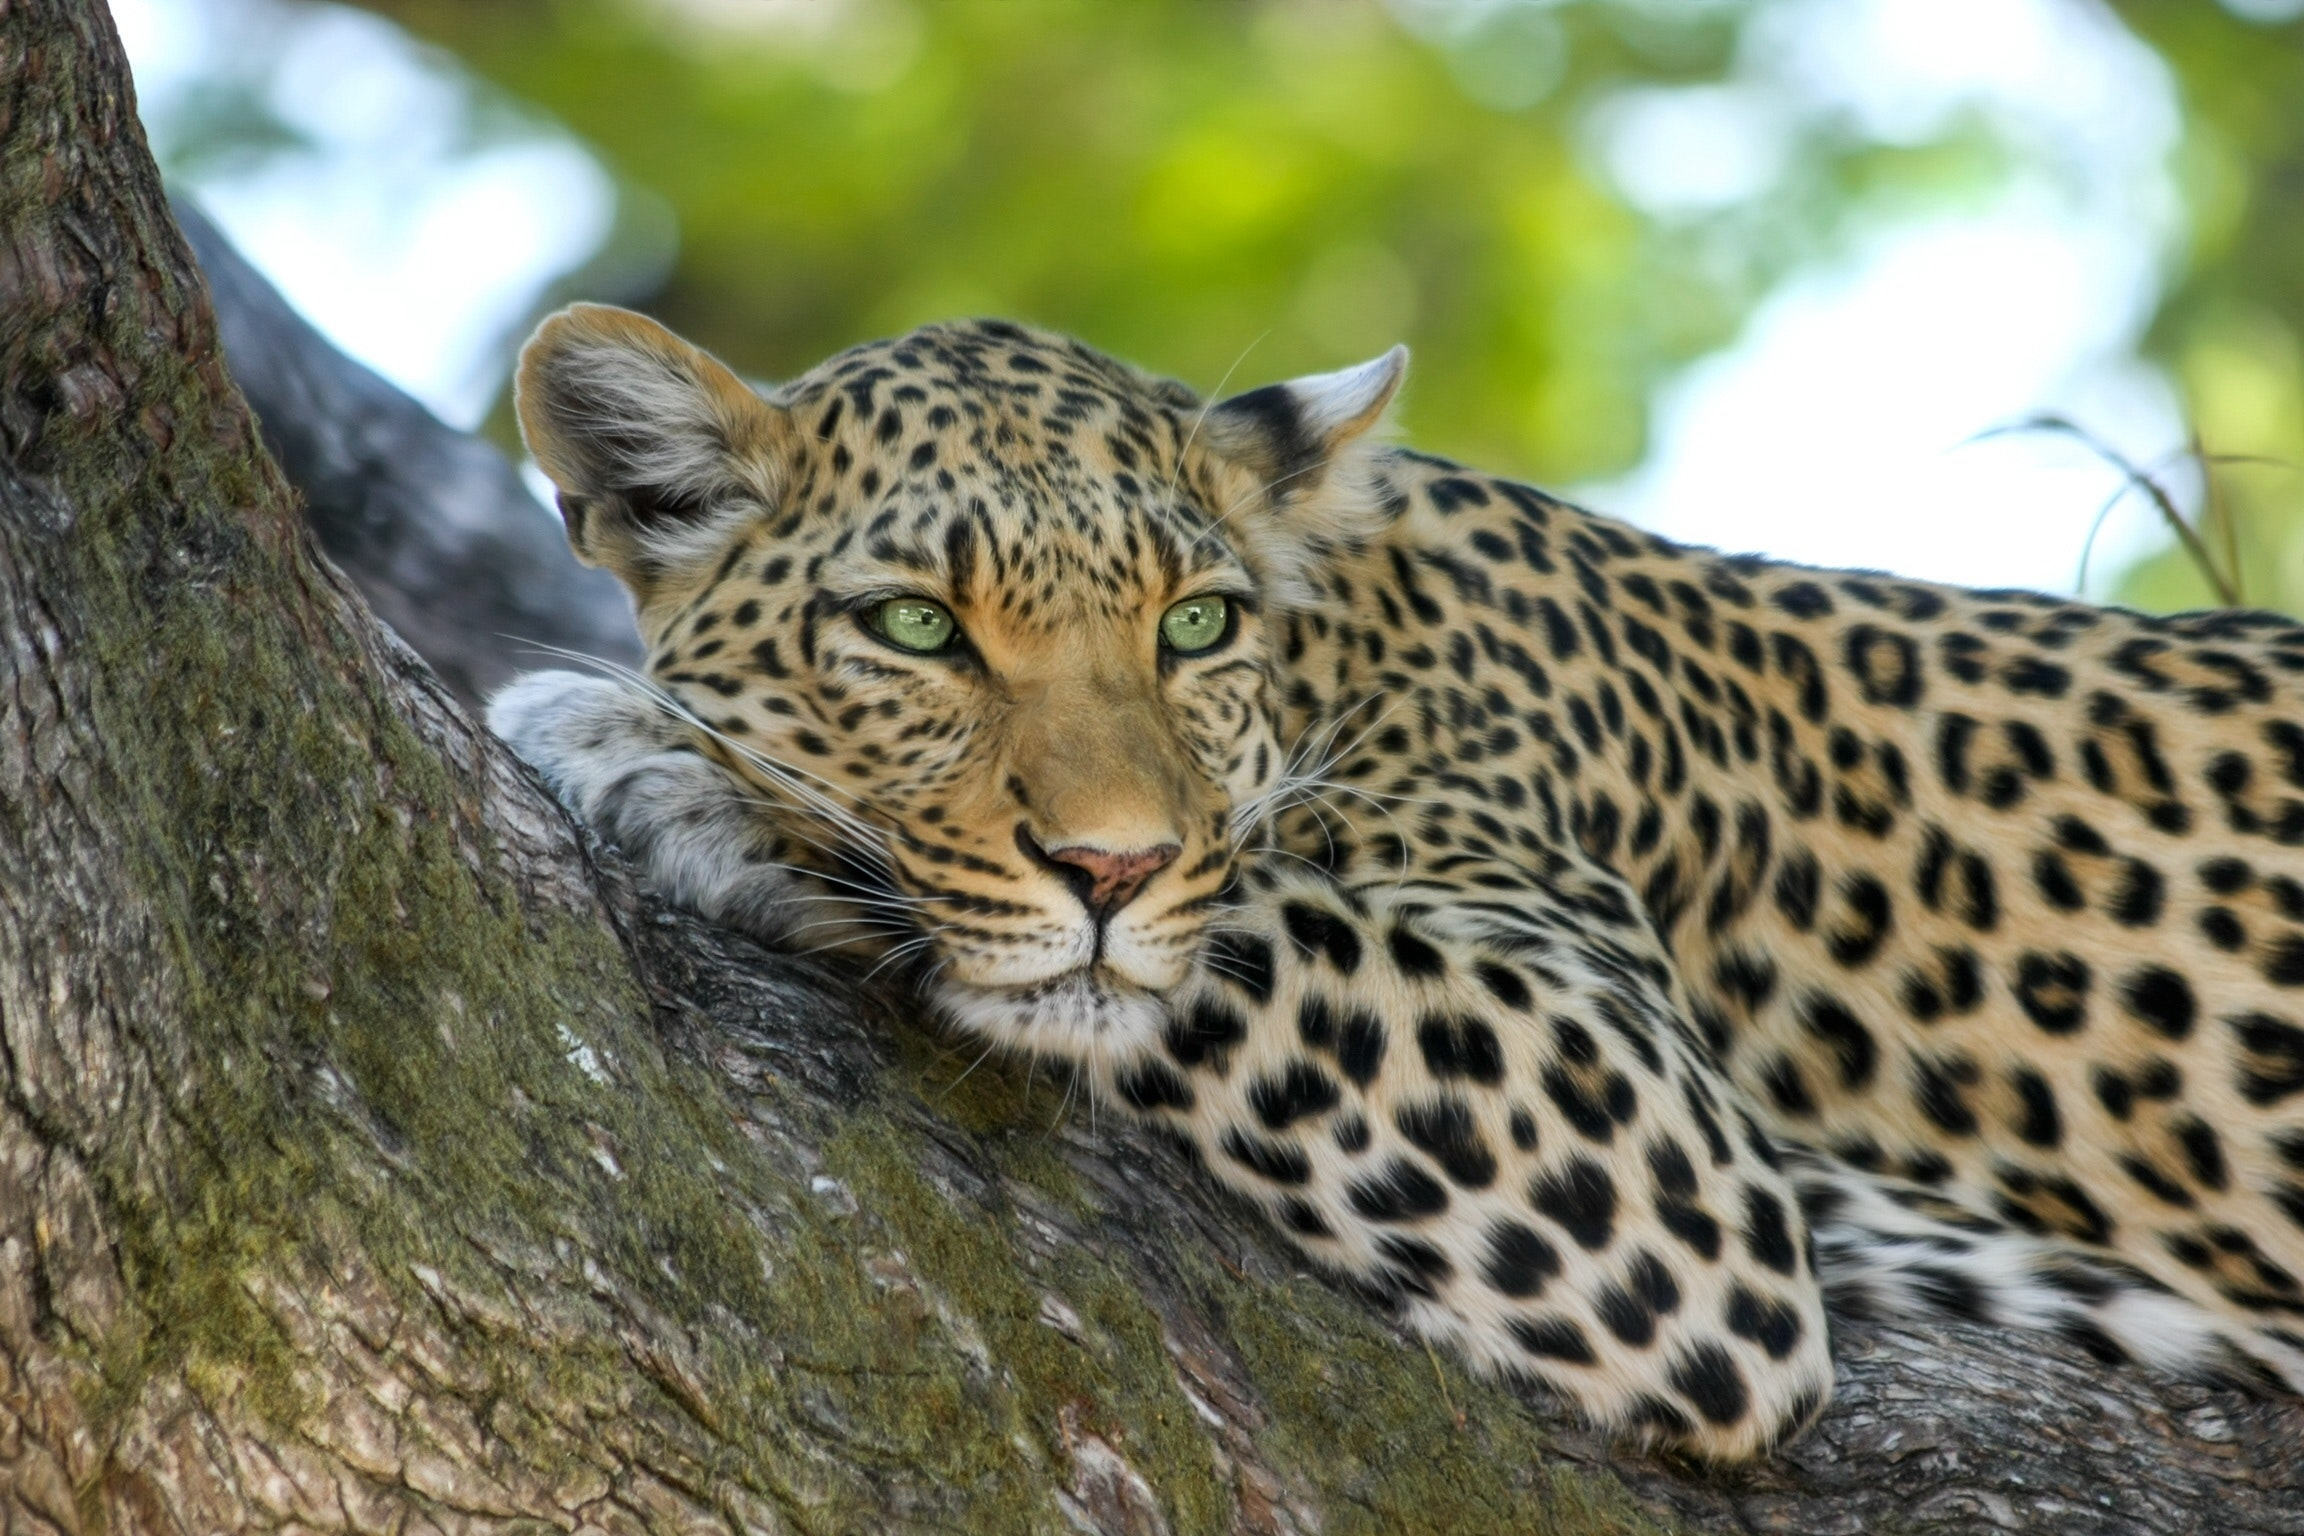 A leopard sleeping on a tree branch